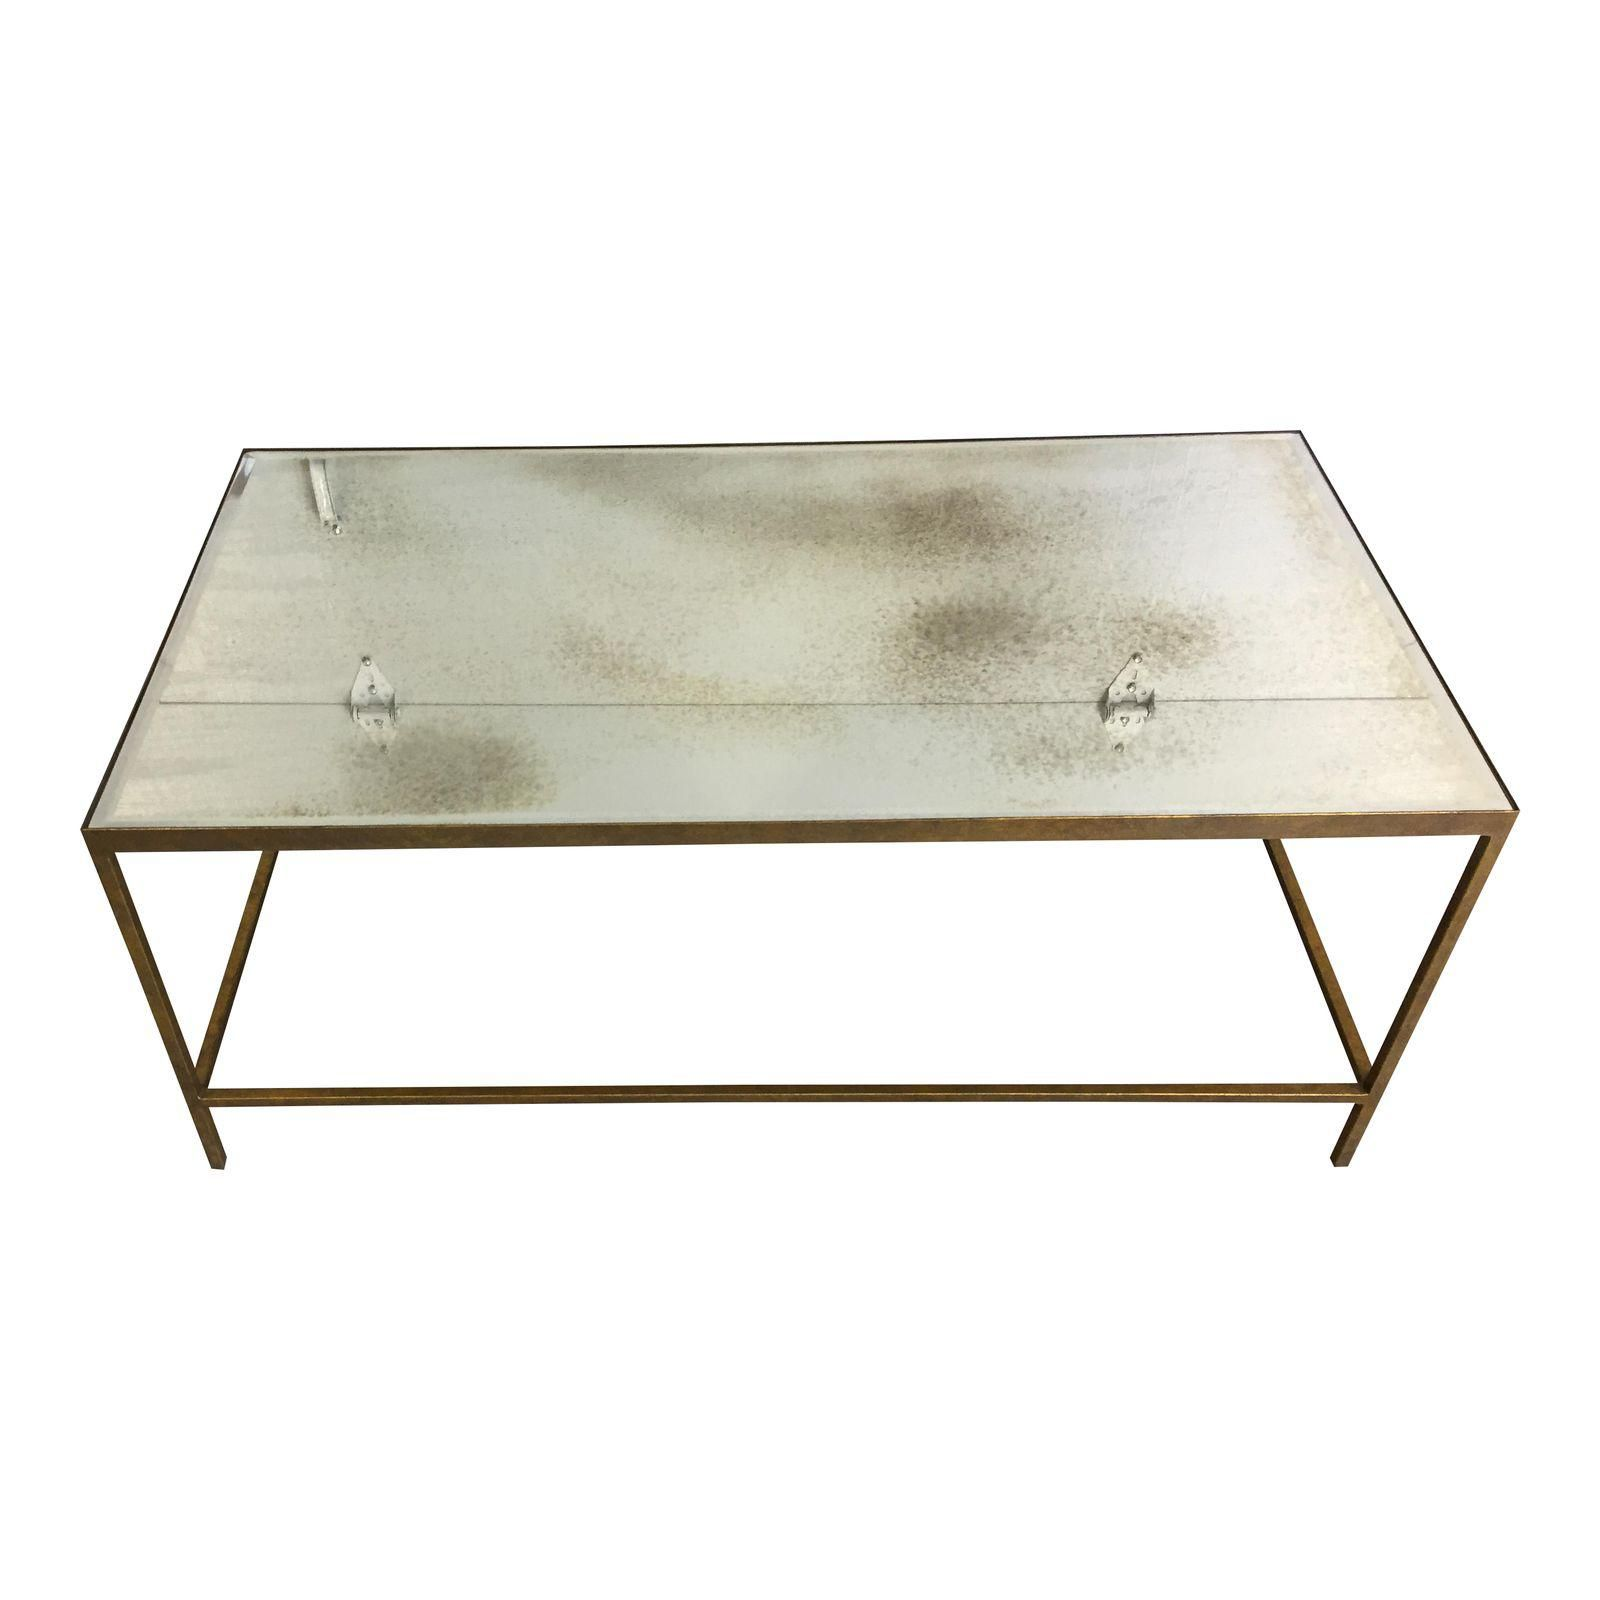 Goldleaf Antique Glass Coffee Table 44x24dx18h 500 Glass Coffee